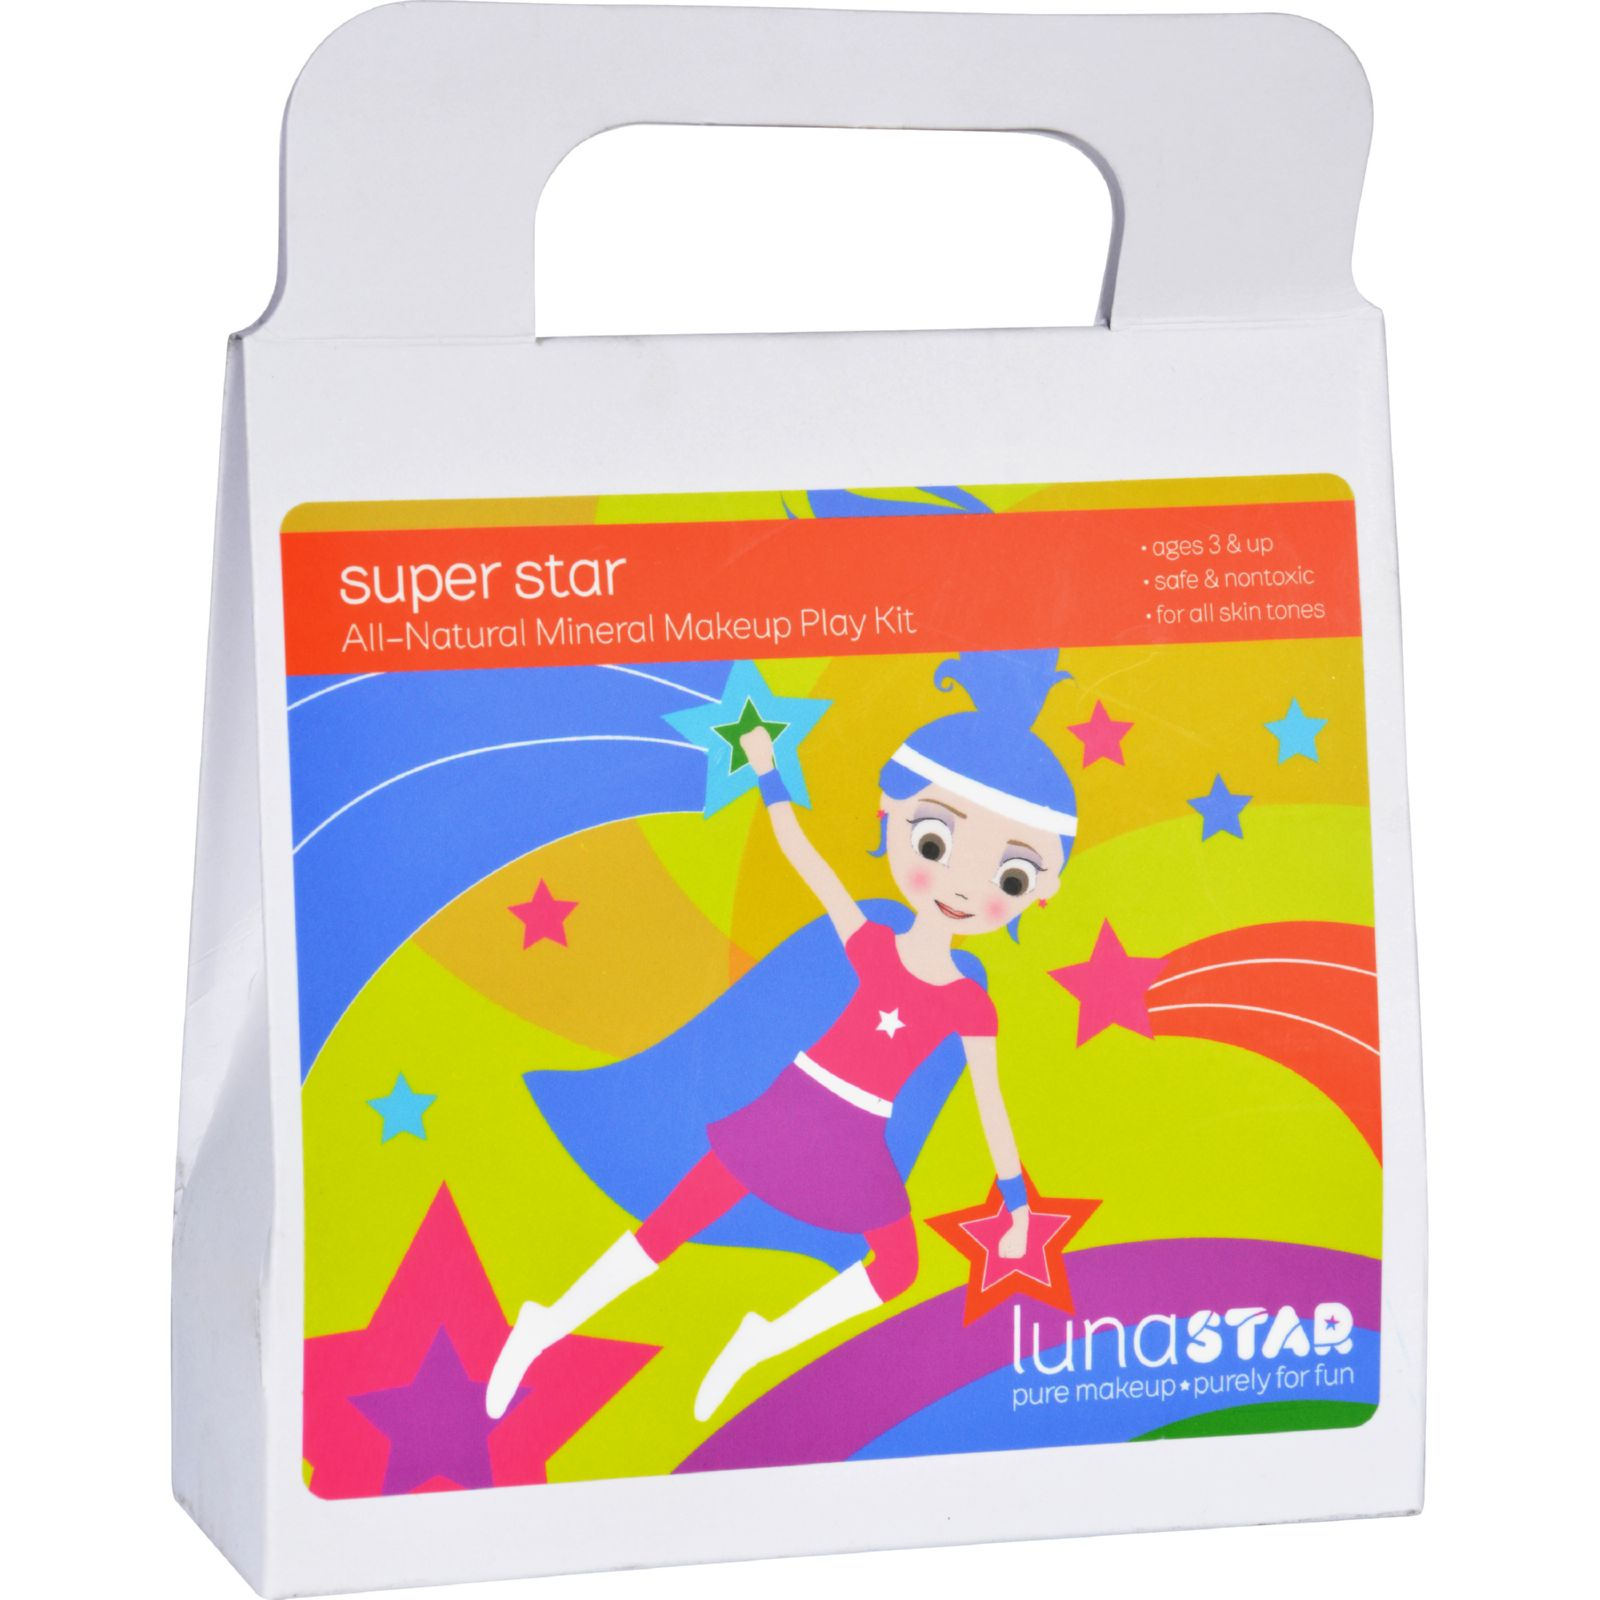 Lunastar Play Makeup - Super Star - 1 Kit